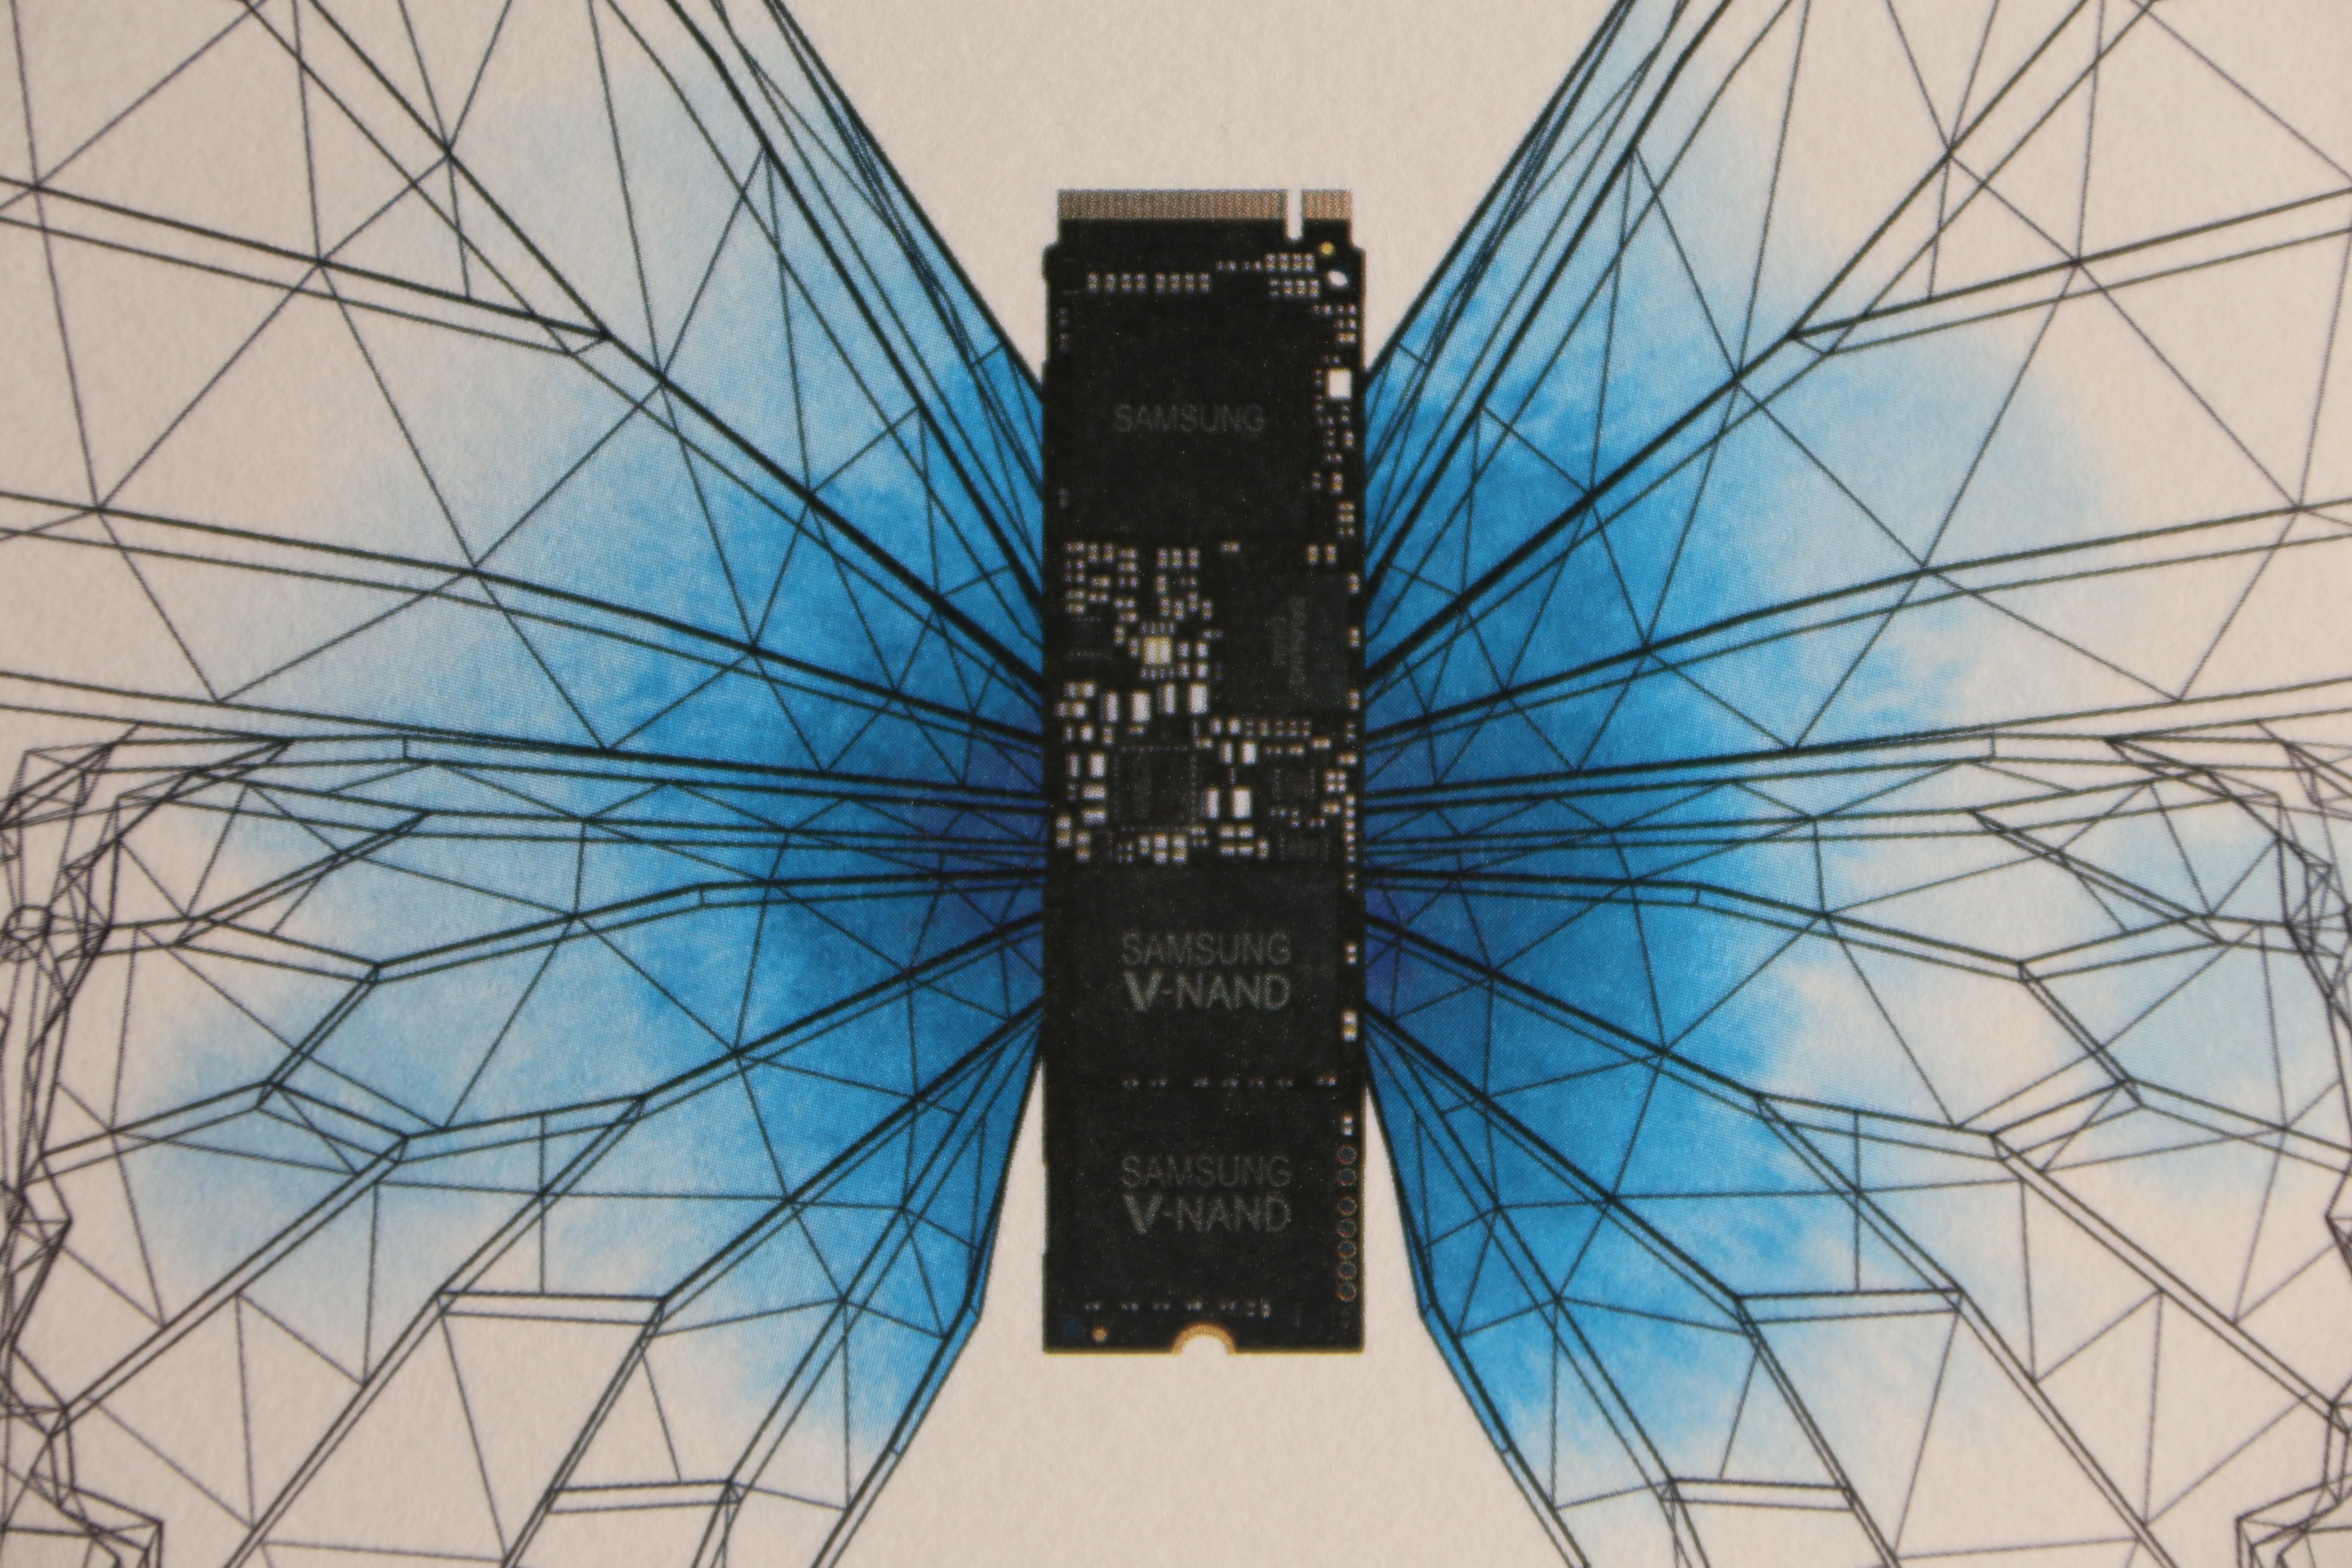 Ssd review 2015